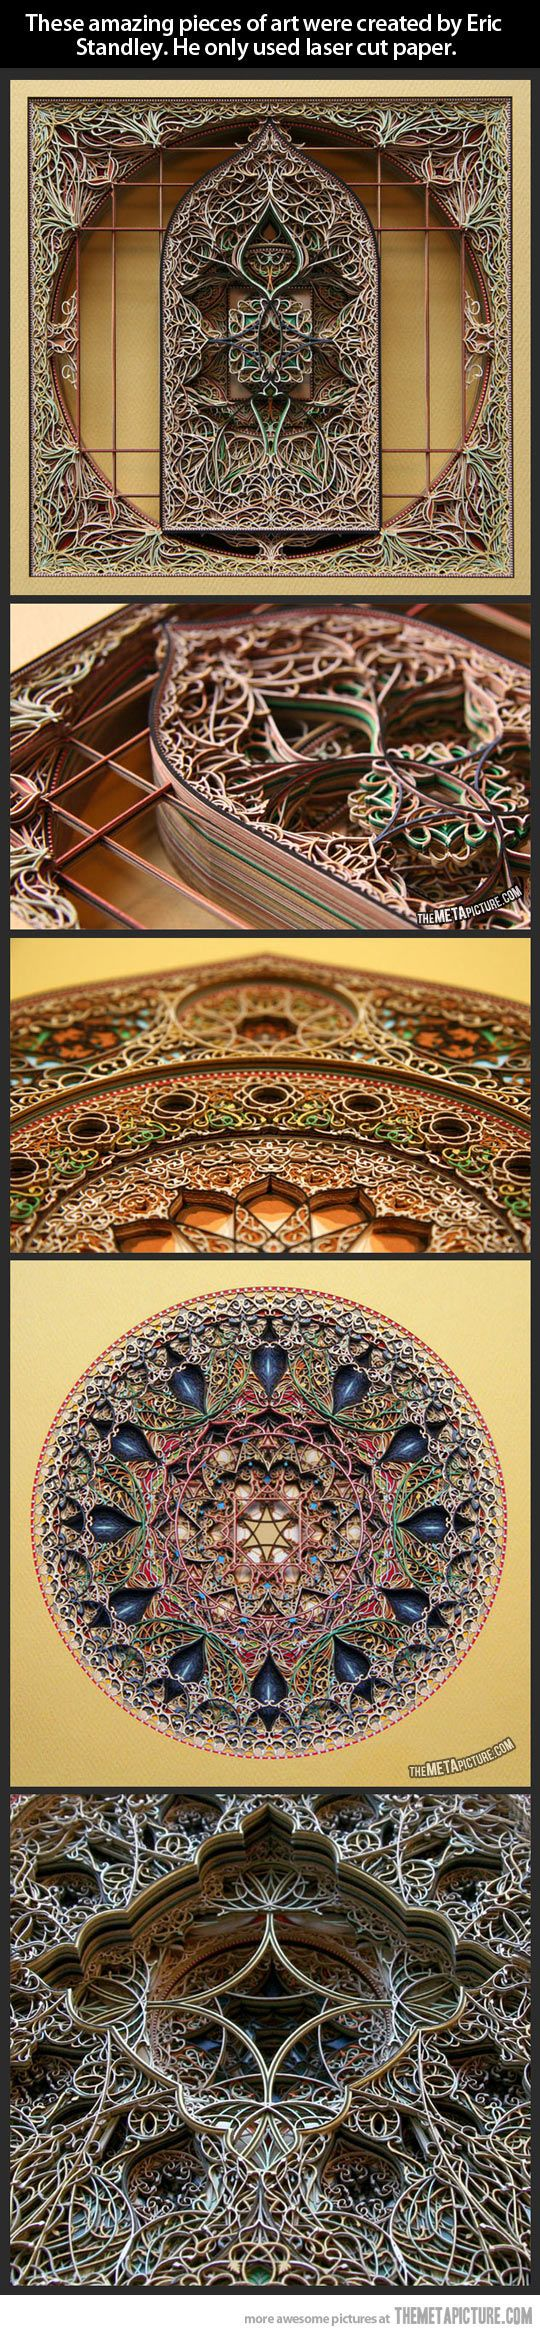 Eric Standley, a Virginia-based artist who works with laser-cut paper, creates amazing and awe-inspiring layered paper cuts of extraordinary complexity that successfully marry Gothic and Islamic architectural elements in tiny cathedral-like spaces.